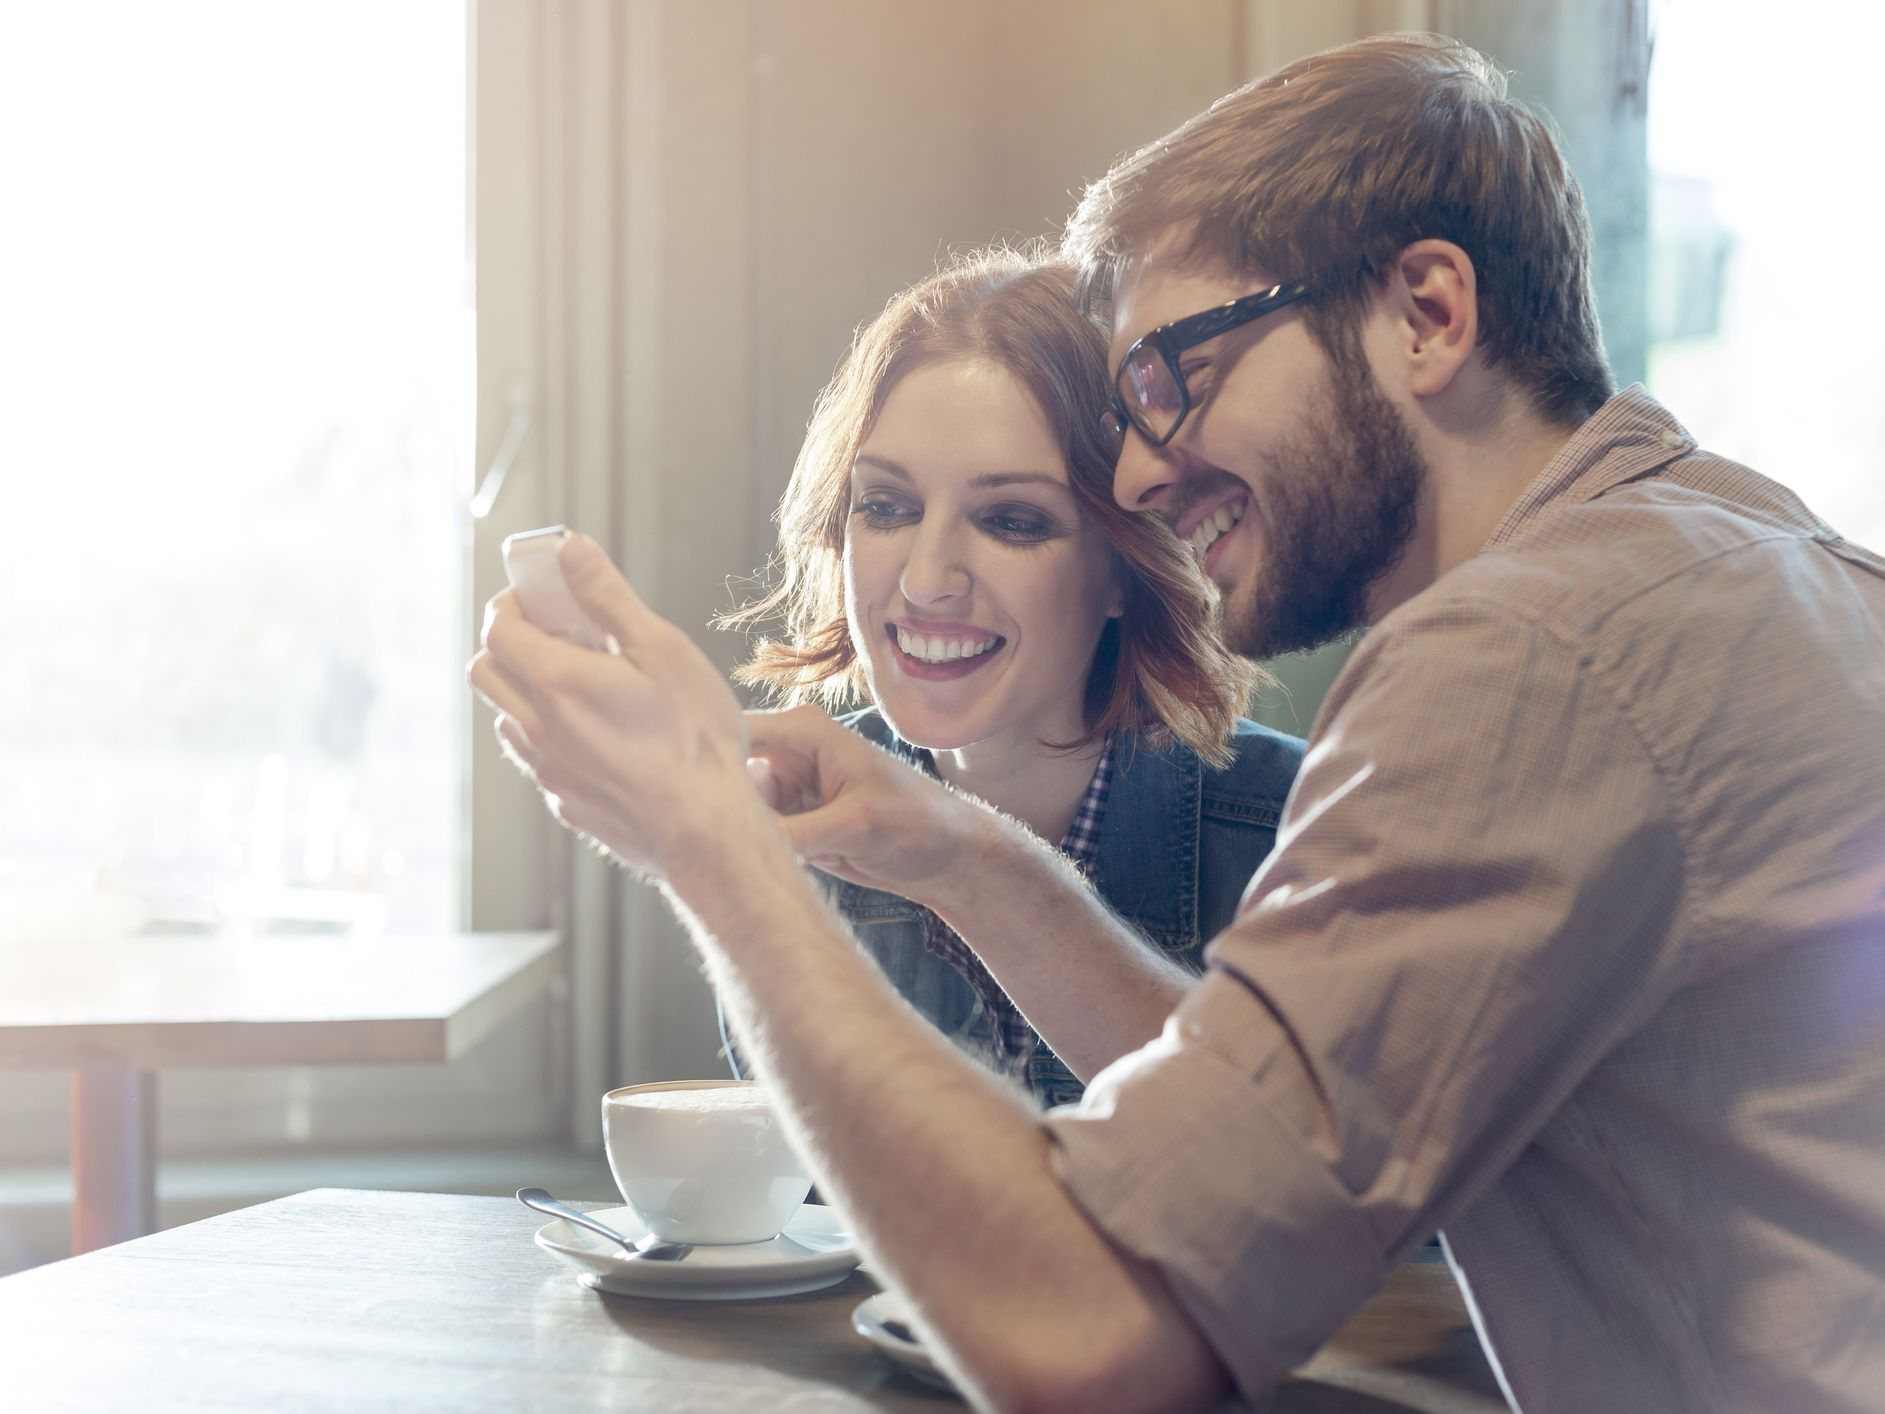 Benefits and Risks of Apps Like 'Happy Couple'